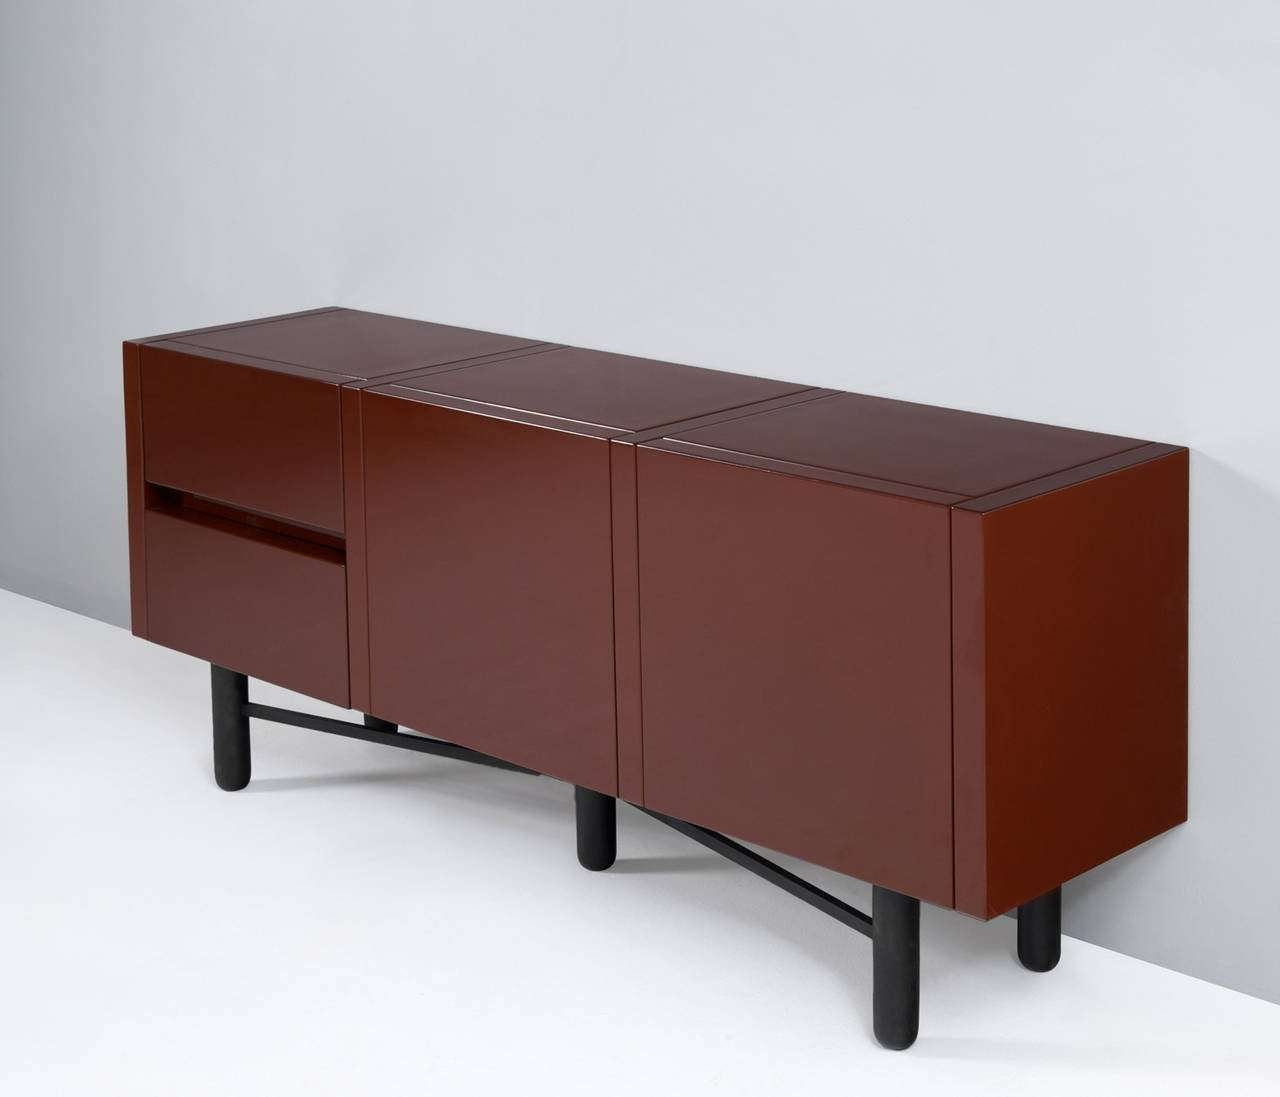 Roche Bobois Red Lacquered High Gloss Sideboard For Sale At 1stdibs For Roche Bobois Sideboards (View 6 of 20)